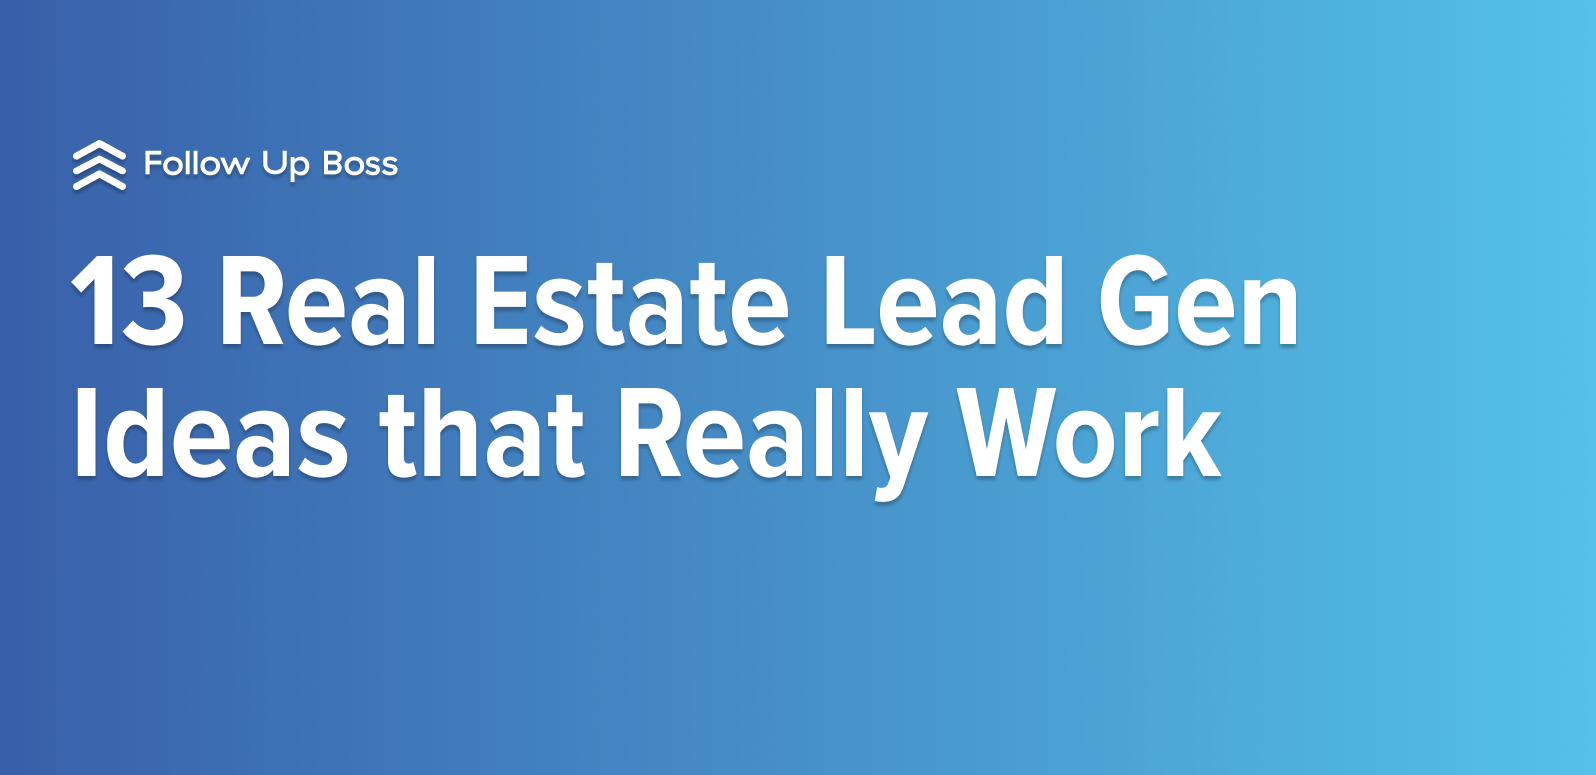 13 Real Estate Lead Gen Ideas that Really Work in 2019